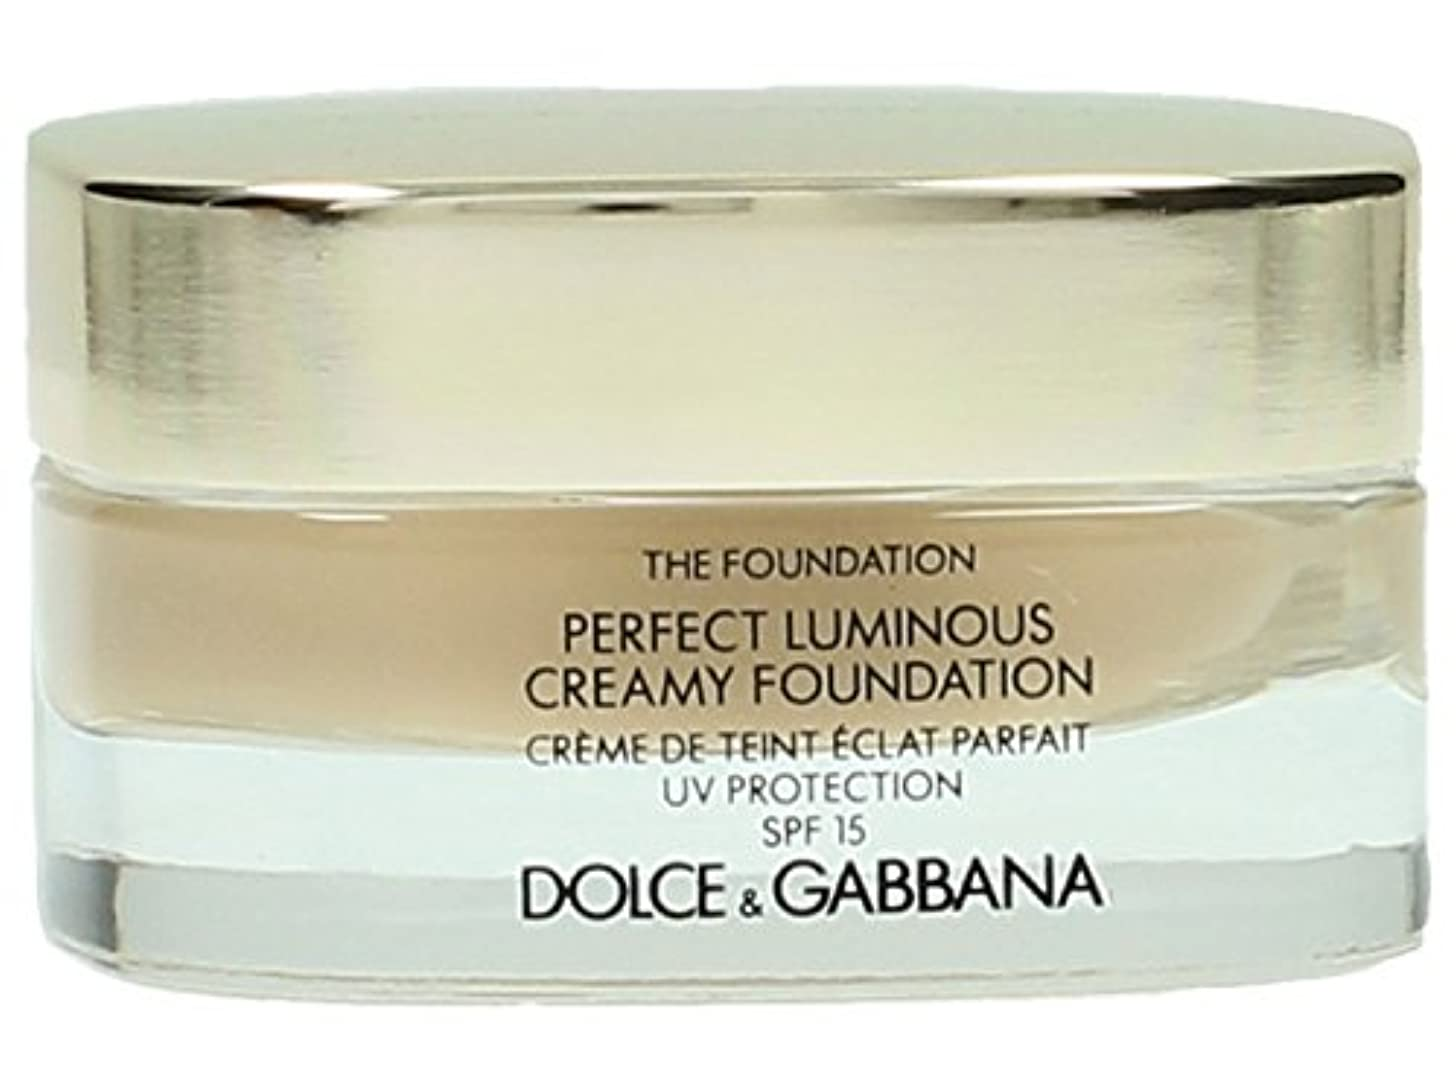 影響を受けやすいです膨らみ新しさDolce & Gabbana The Foundation Perfect Finish Creamy Foundation SPF 15 - # 120 Natural Beige 30ml